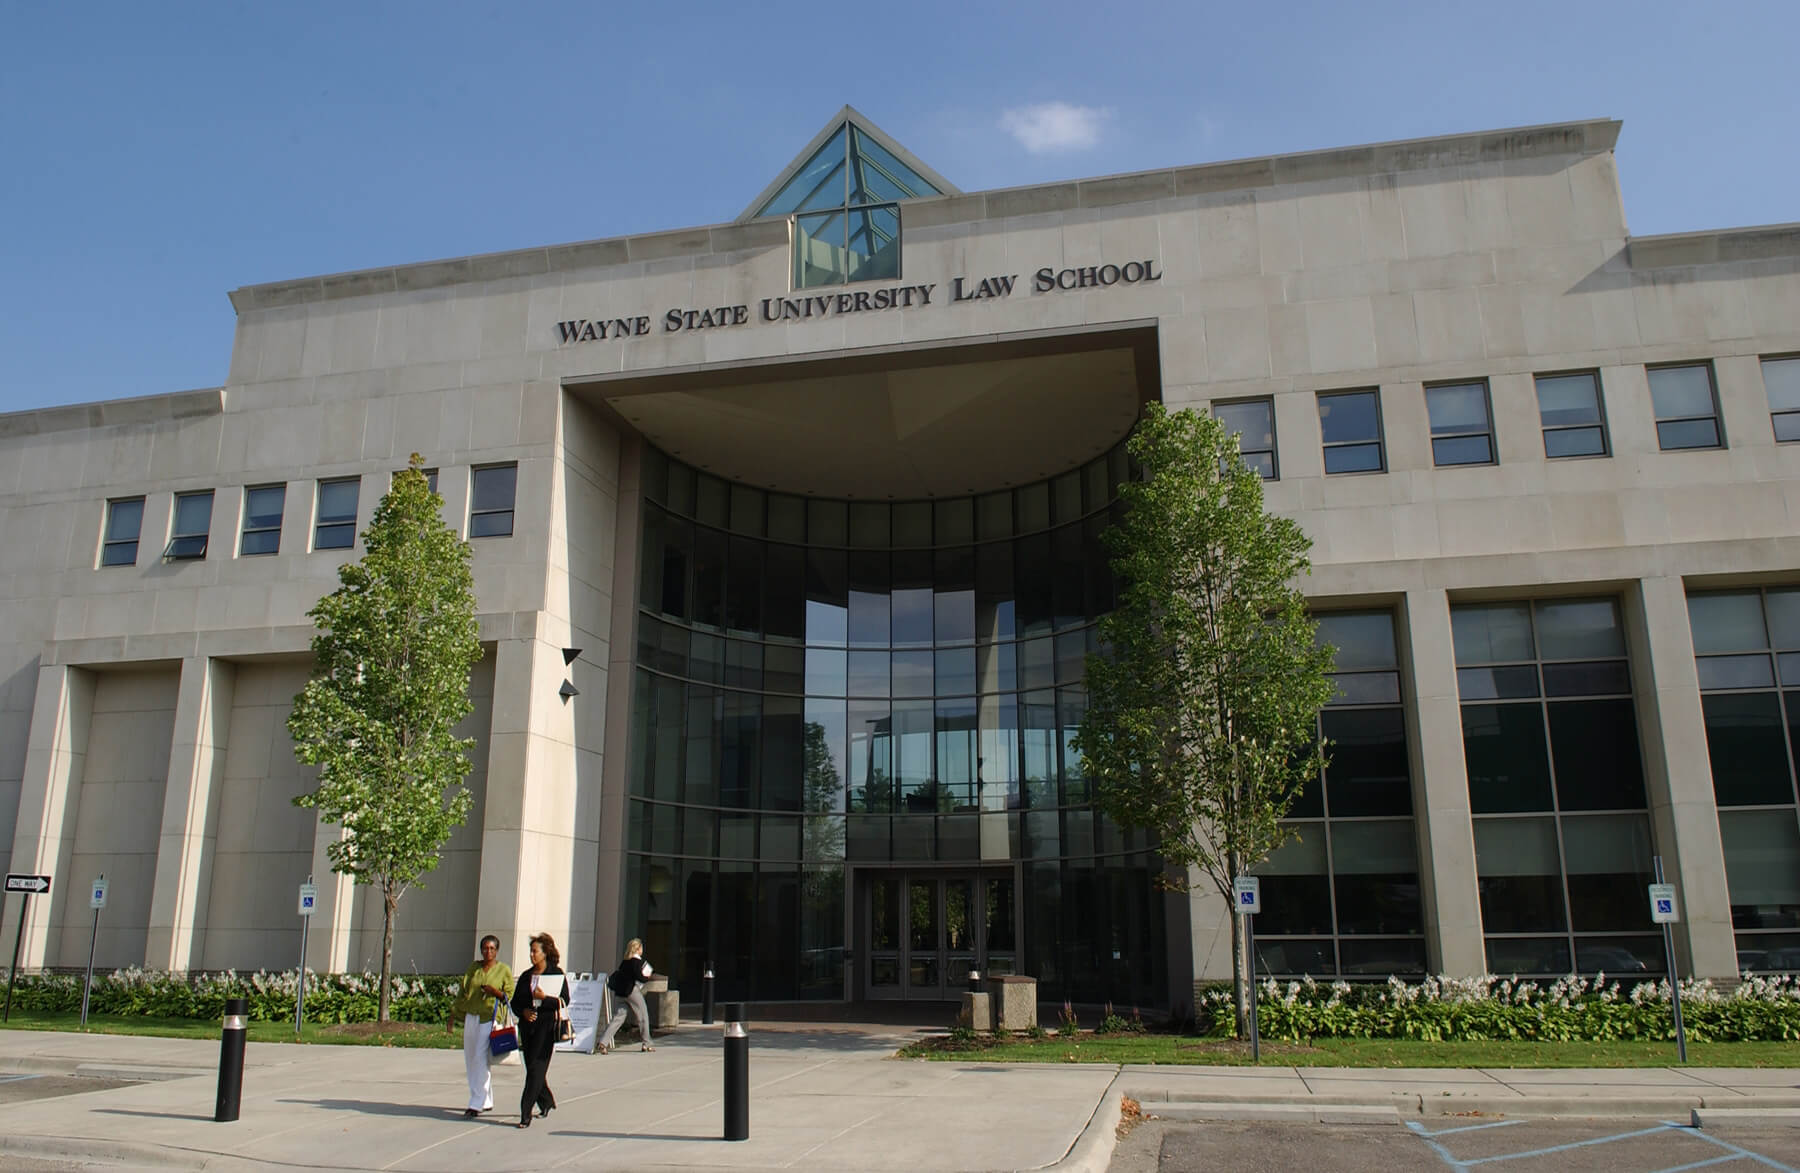 Wayne State University Law School